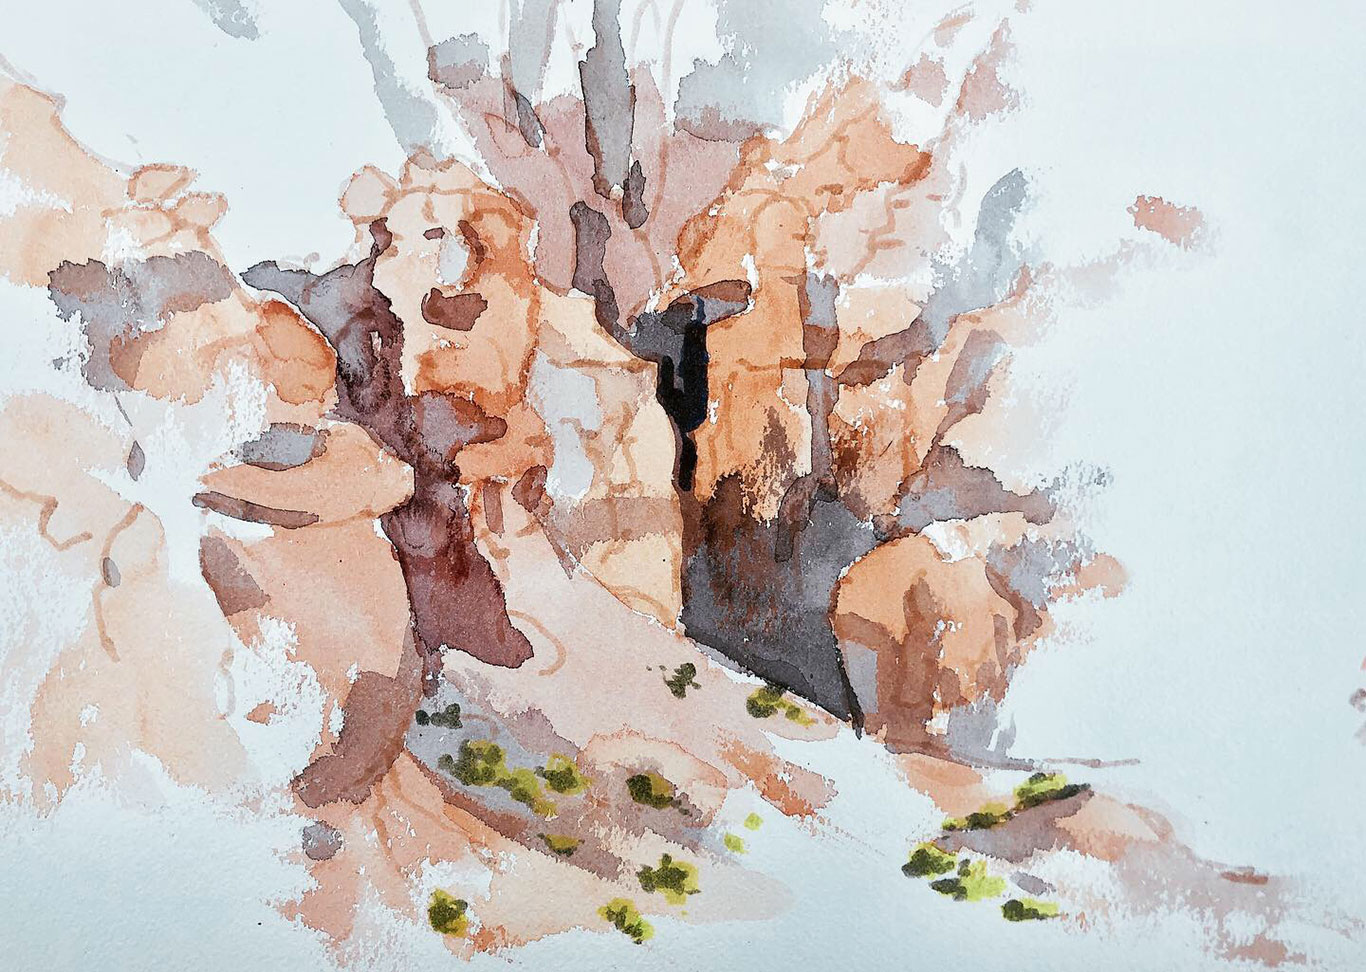 Goblin Valley Landscape Watercolor Painting, (in progress) Clara Lieu